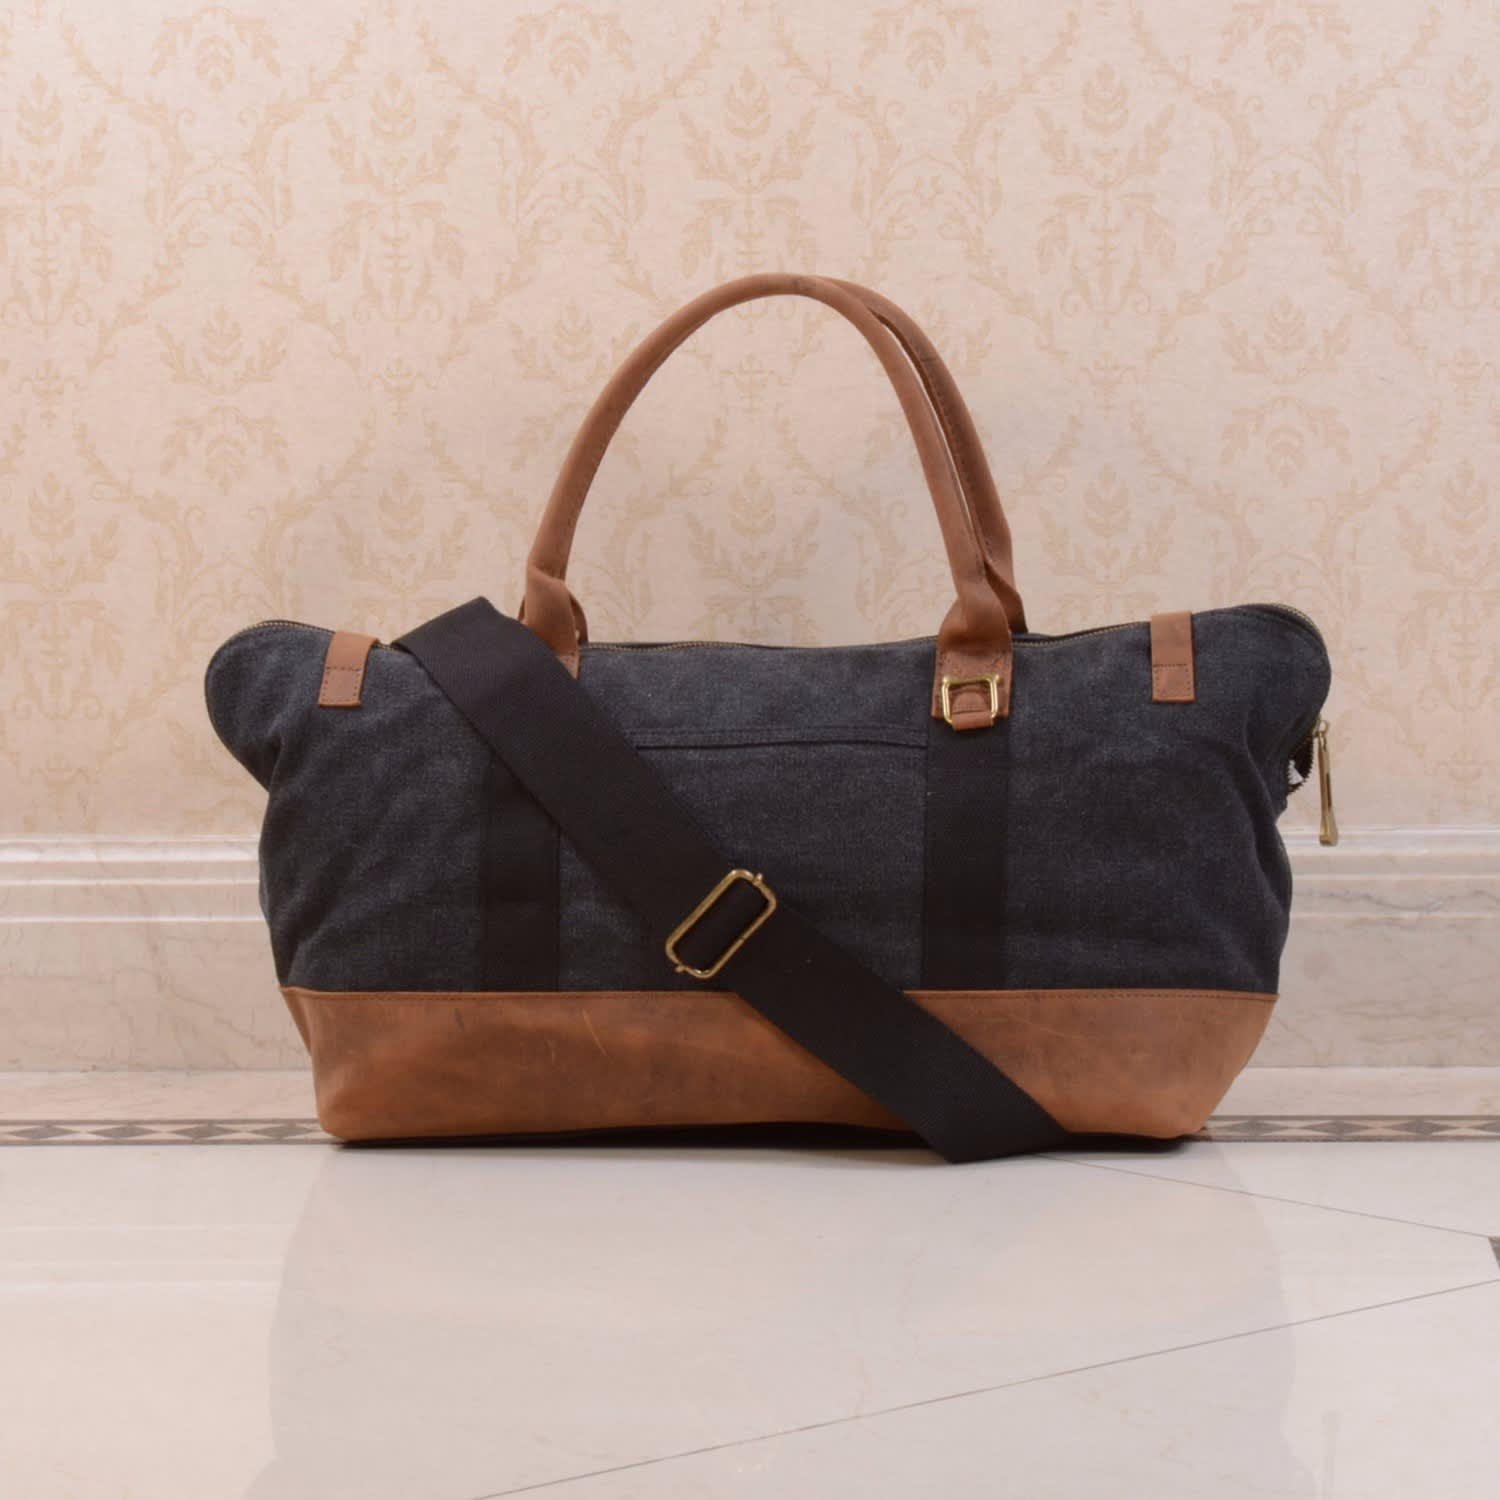 Outlet Sale Online EAZO Canvas Ladies Weekend Bag Factory Outlet Free Shipping Countdown Package fWQFEsX